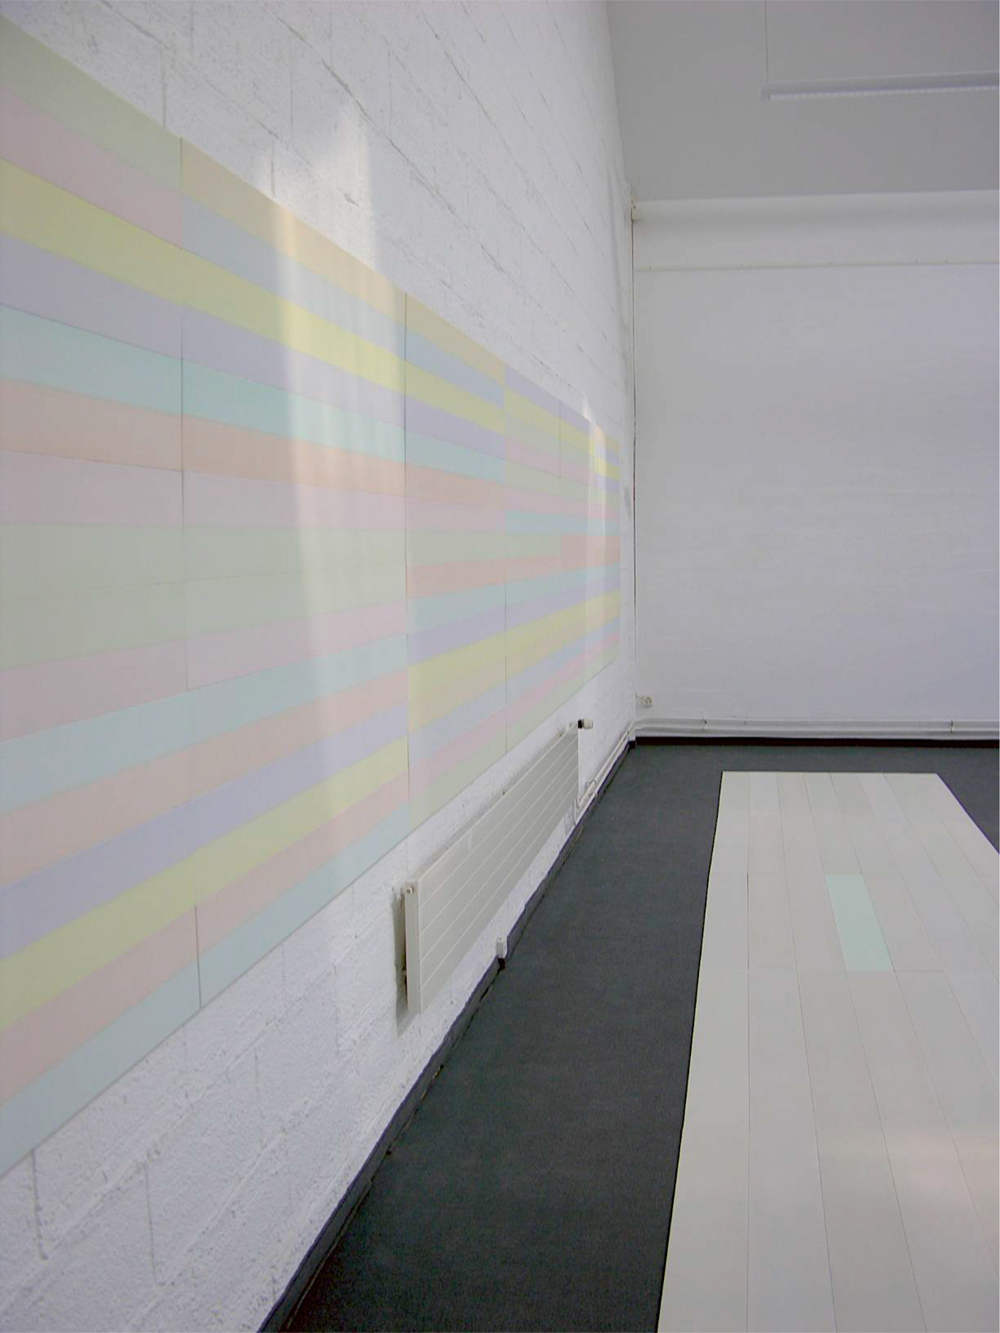 wand/boden-installation nr. 05/2006  - 2 x 140 x 840 cm (variabel)